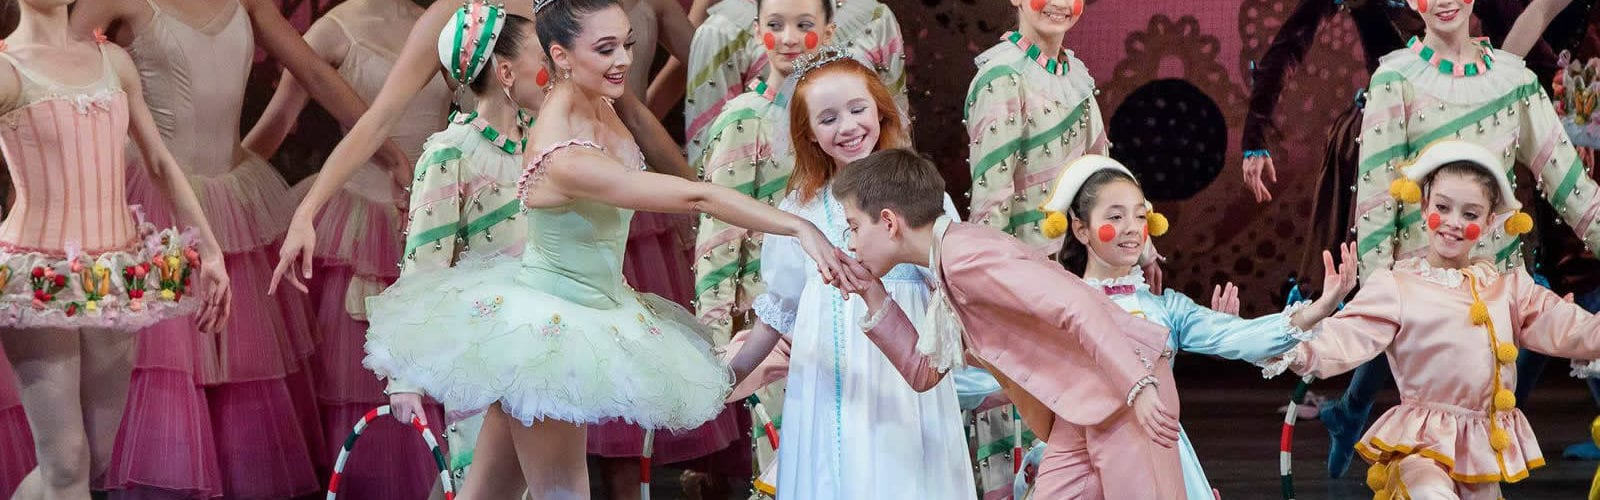 george-balanchine-the-nutcracker-casse-noisette-new-york-city-ballet-une